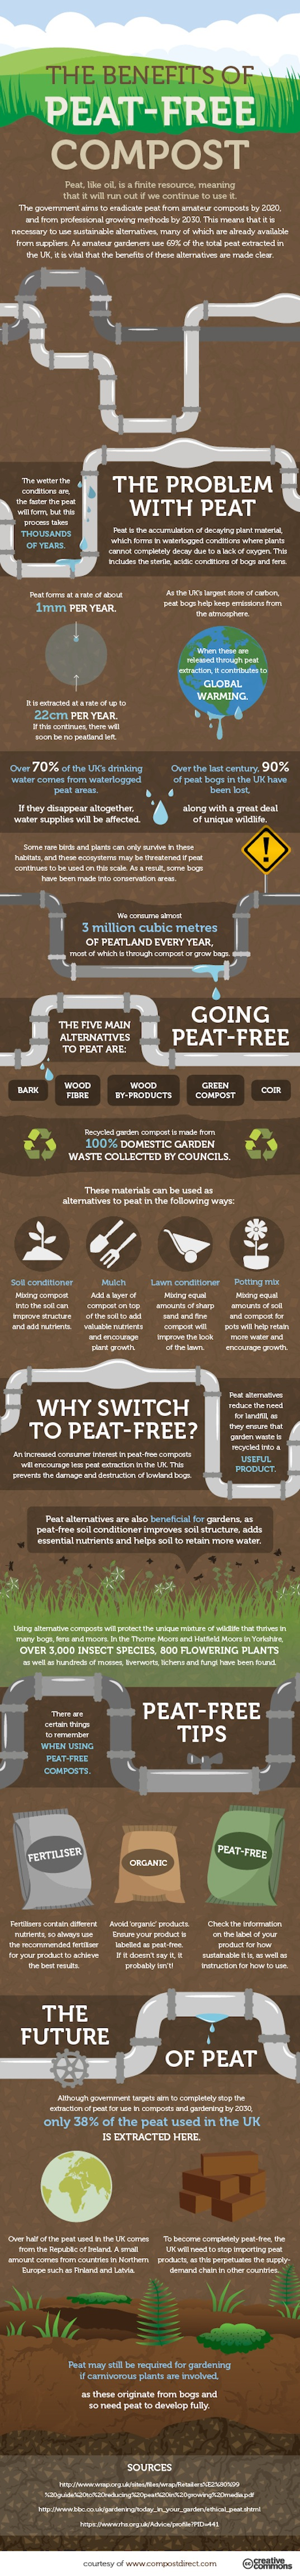 peat, peat-free, peat-free compost, compost, reader submitted content, infographic, compost direct, carbon emissions, environmental destruction, gardening, gardens,